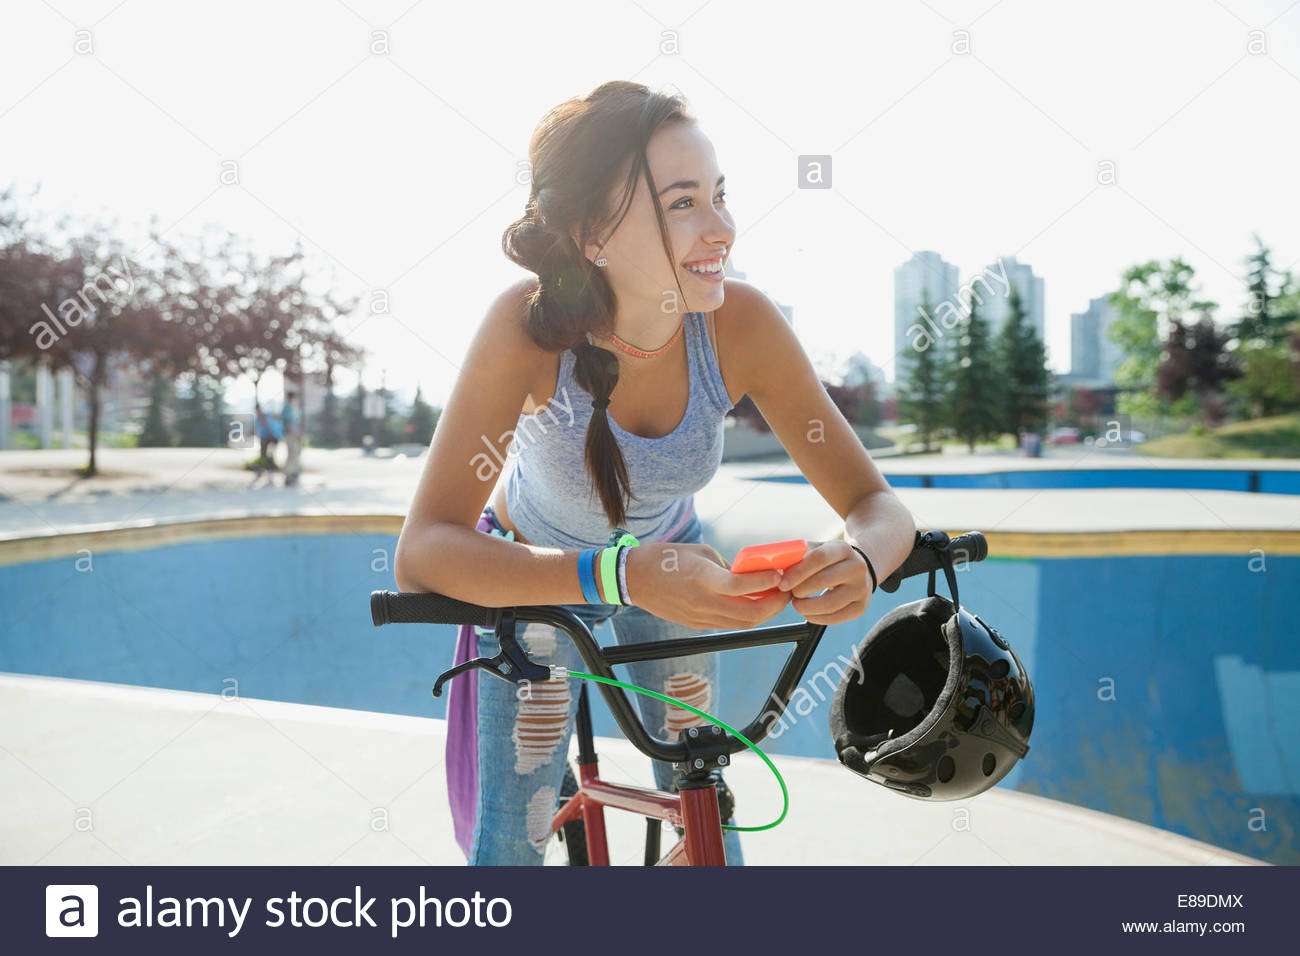 Teenage girl with cell phone on bicycle Stock Photo